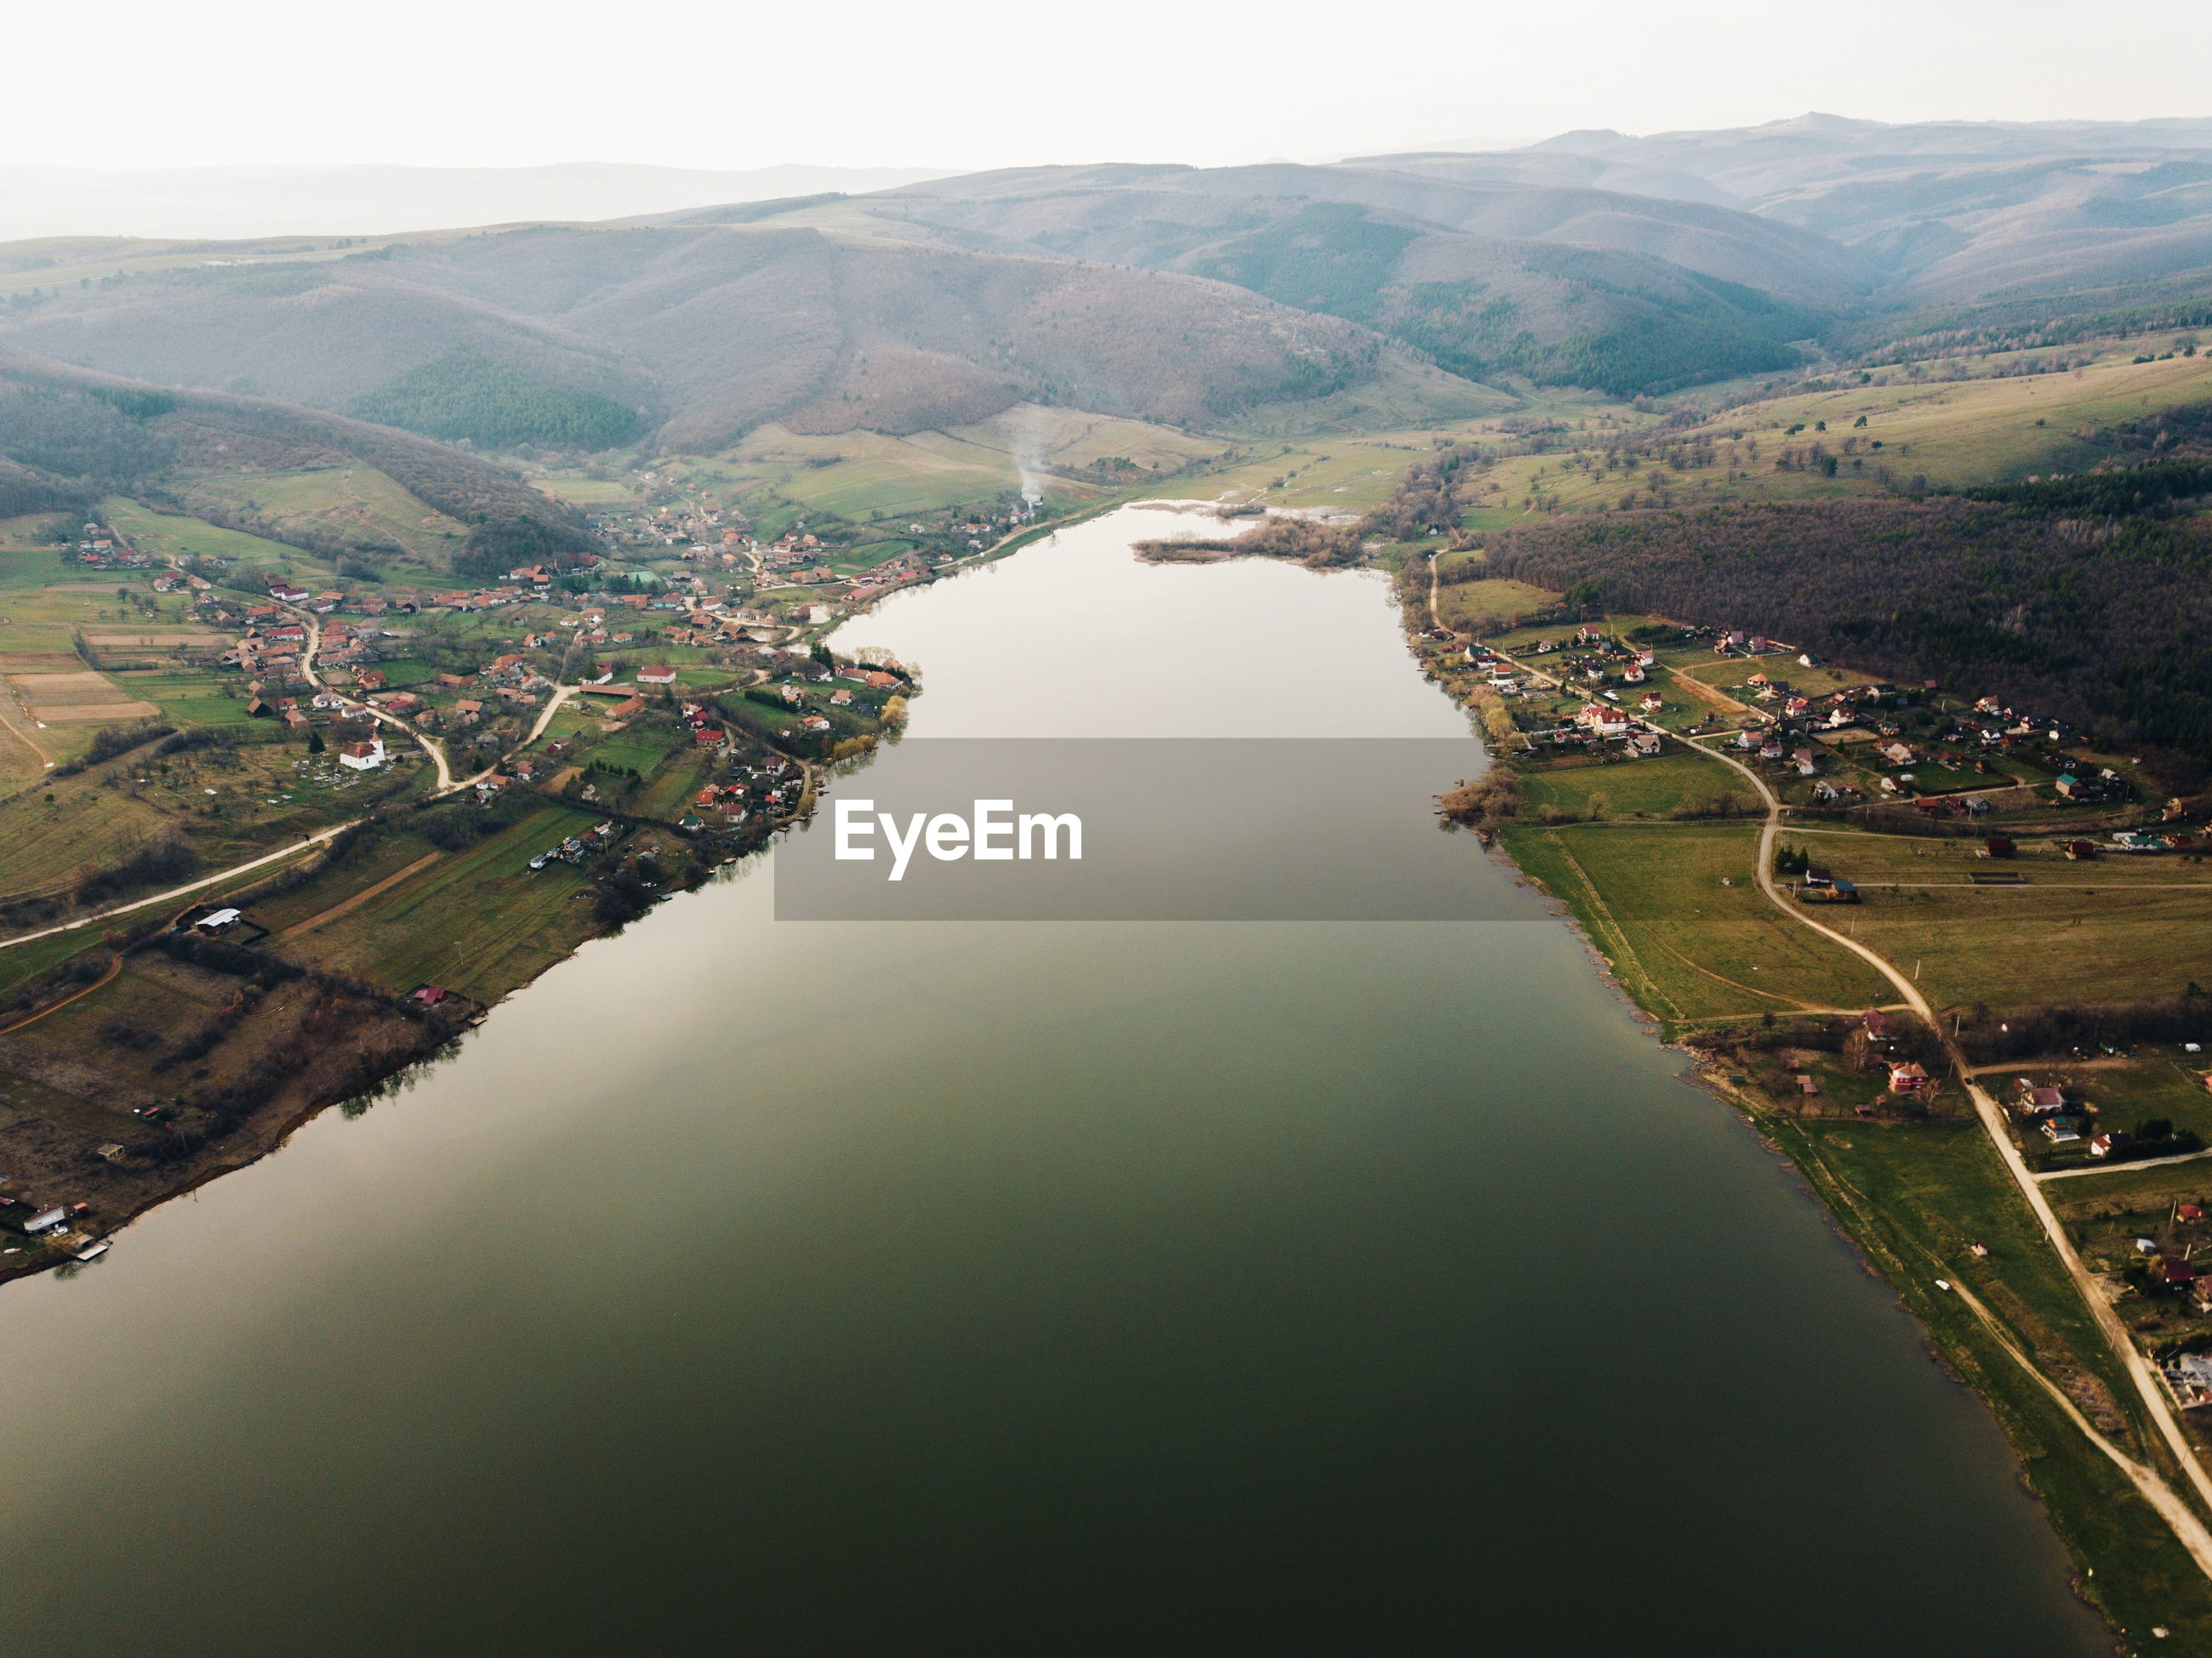 HIGH ANGLE VIEW OF RIVER AMIDST LAND